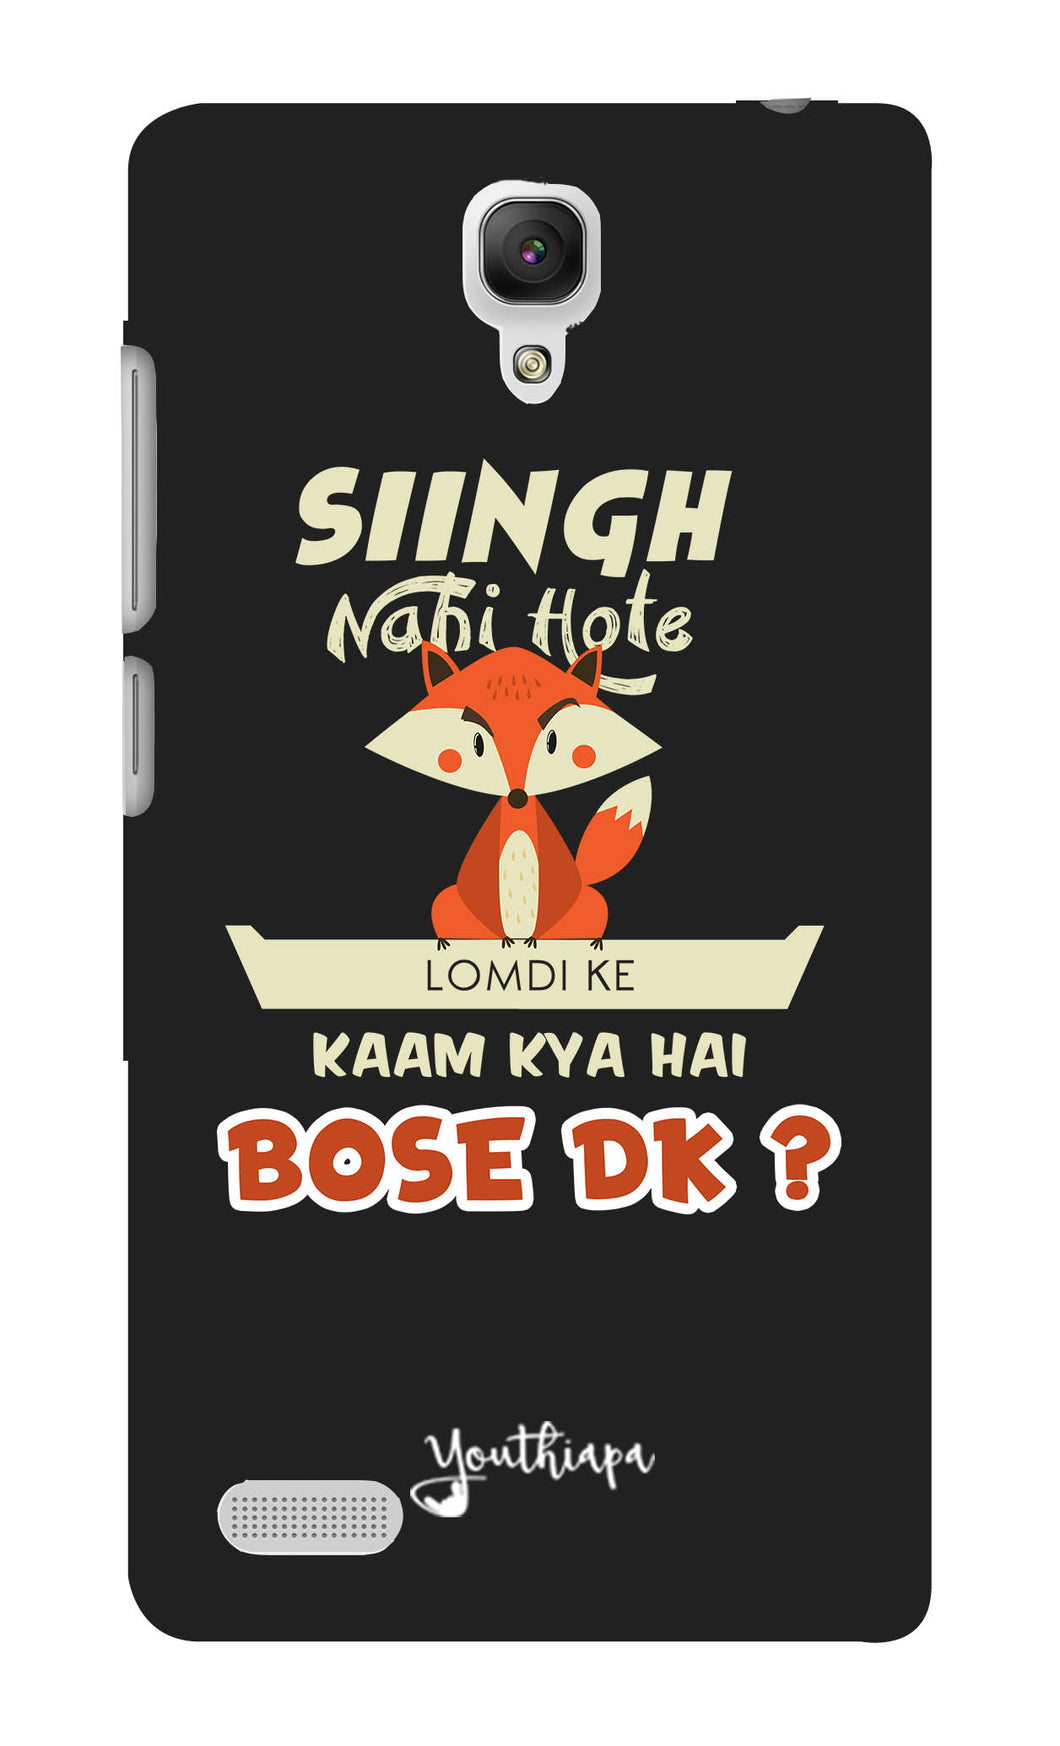 Singh Nahi Hote for Xiaomi Redmi Note 4